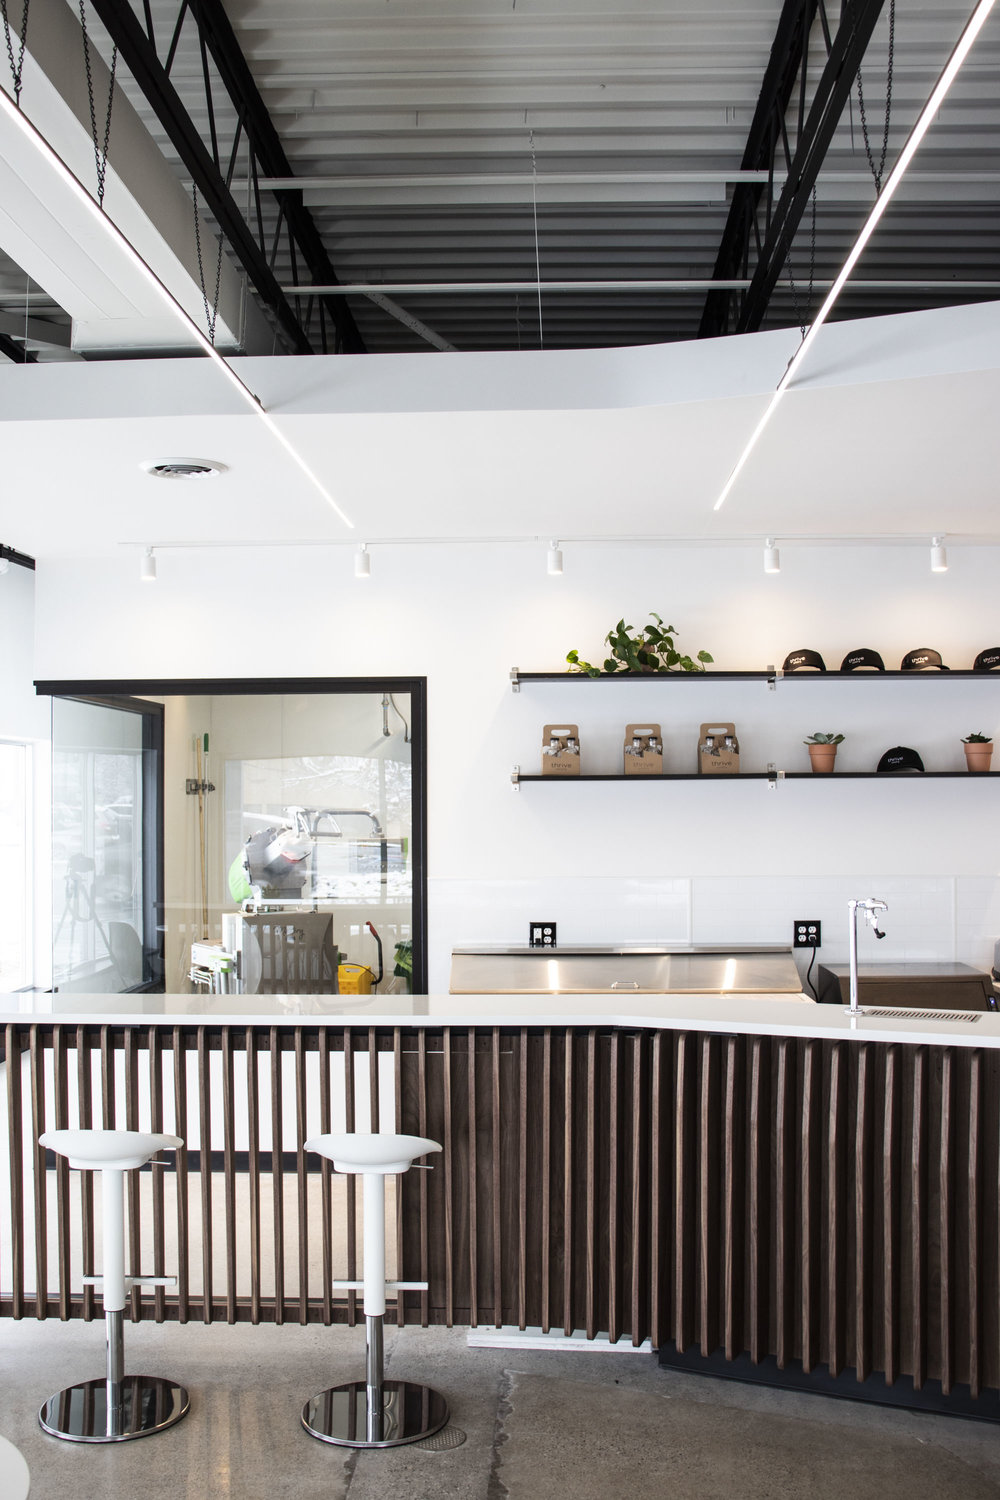 Thrive Juicery Ann Arbor by Synecdoche Design Studio